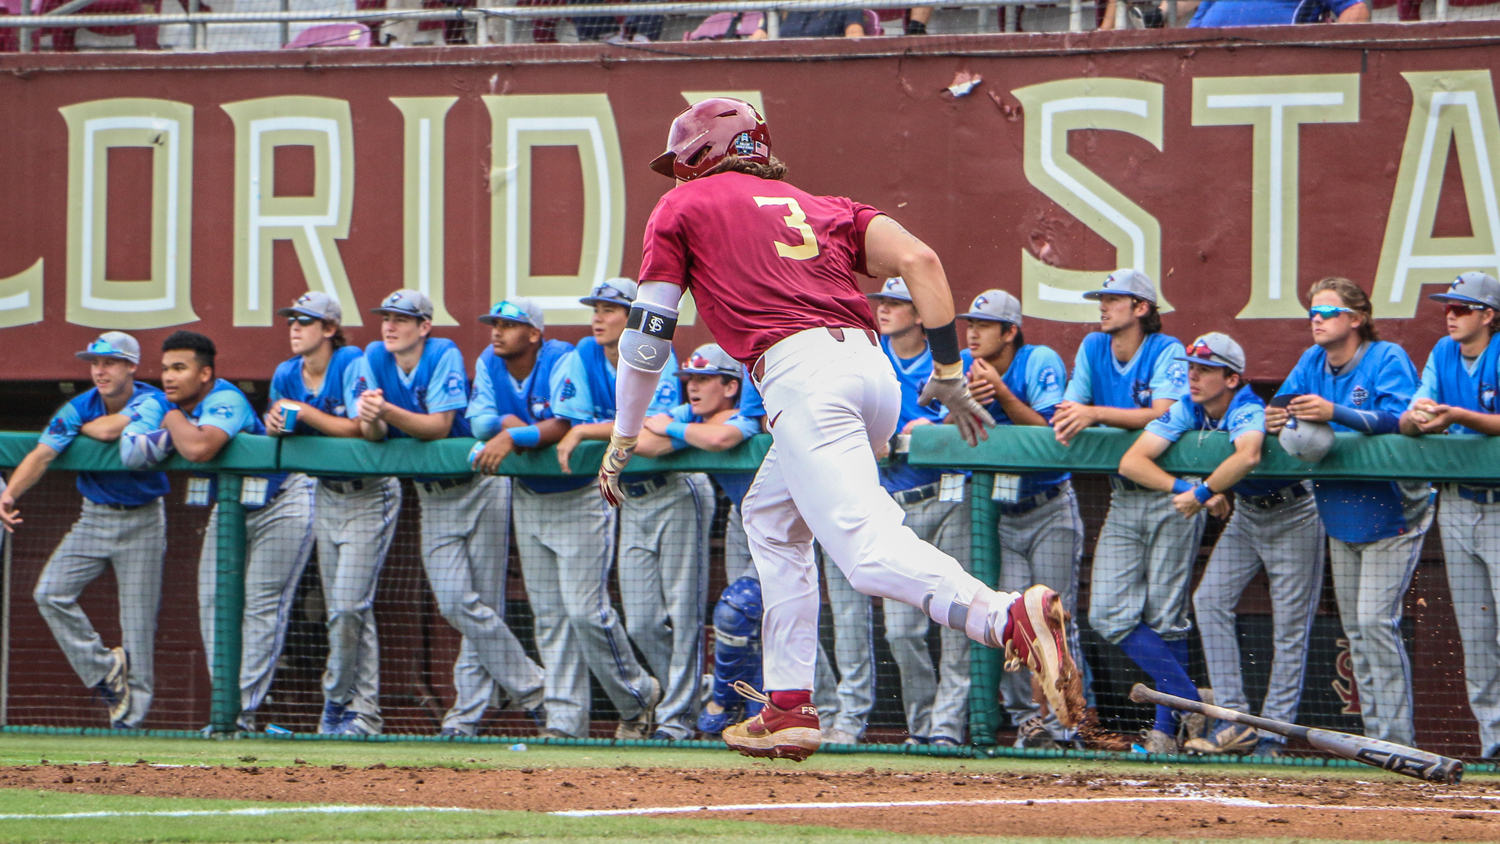 📷: FSU vs. Ontario Blue Jays